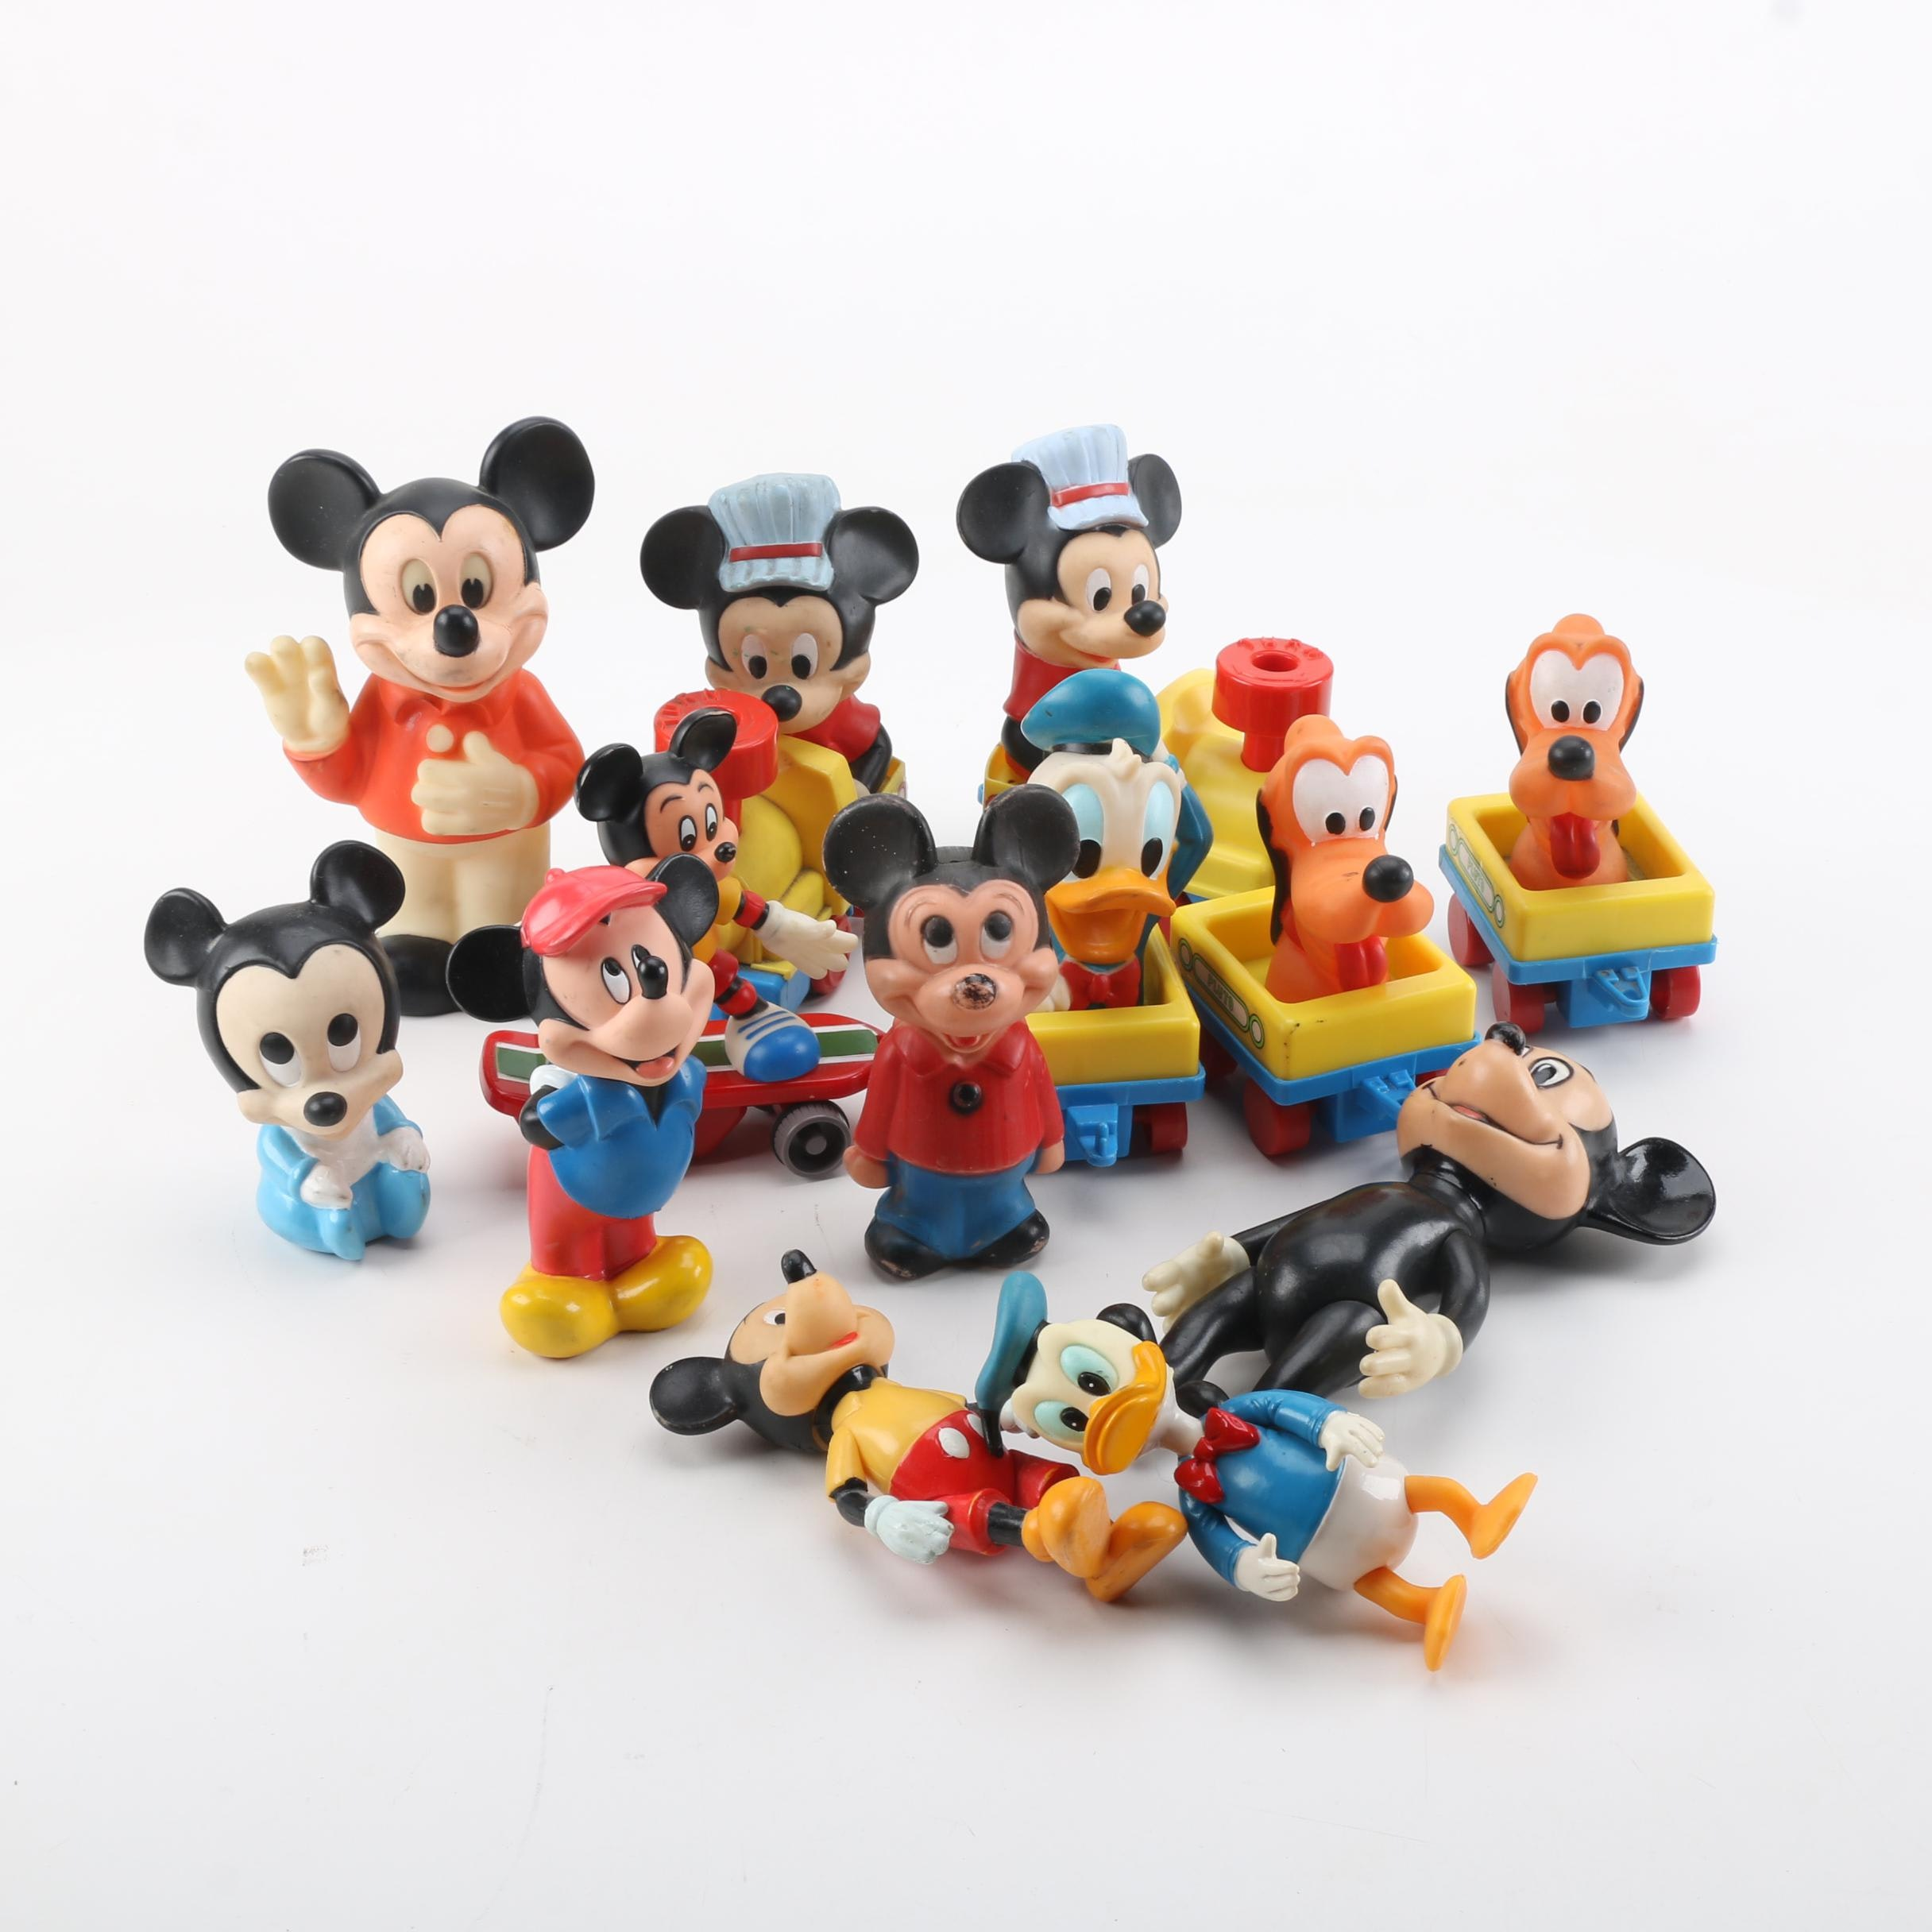 Collection of Disney's Mickey Mouse, Donald Duck, and Pluto Plastic Figurines